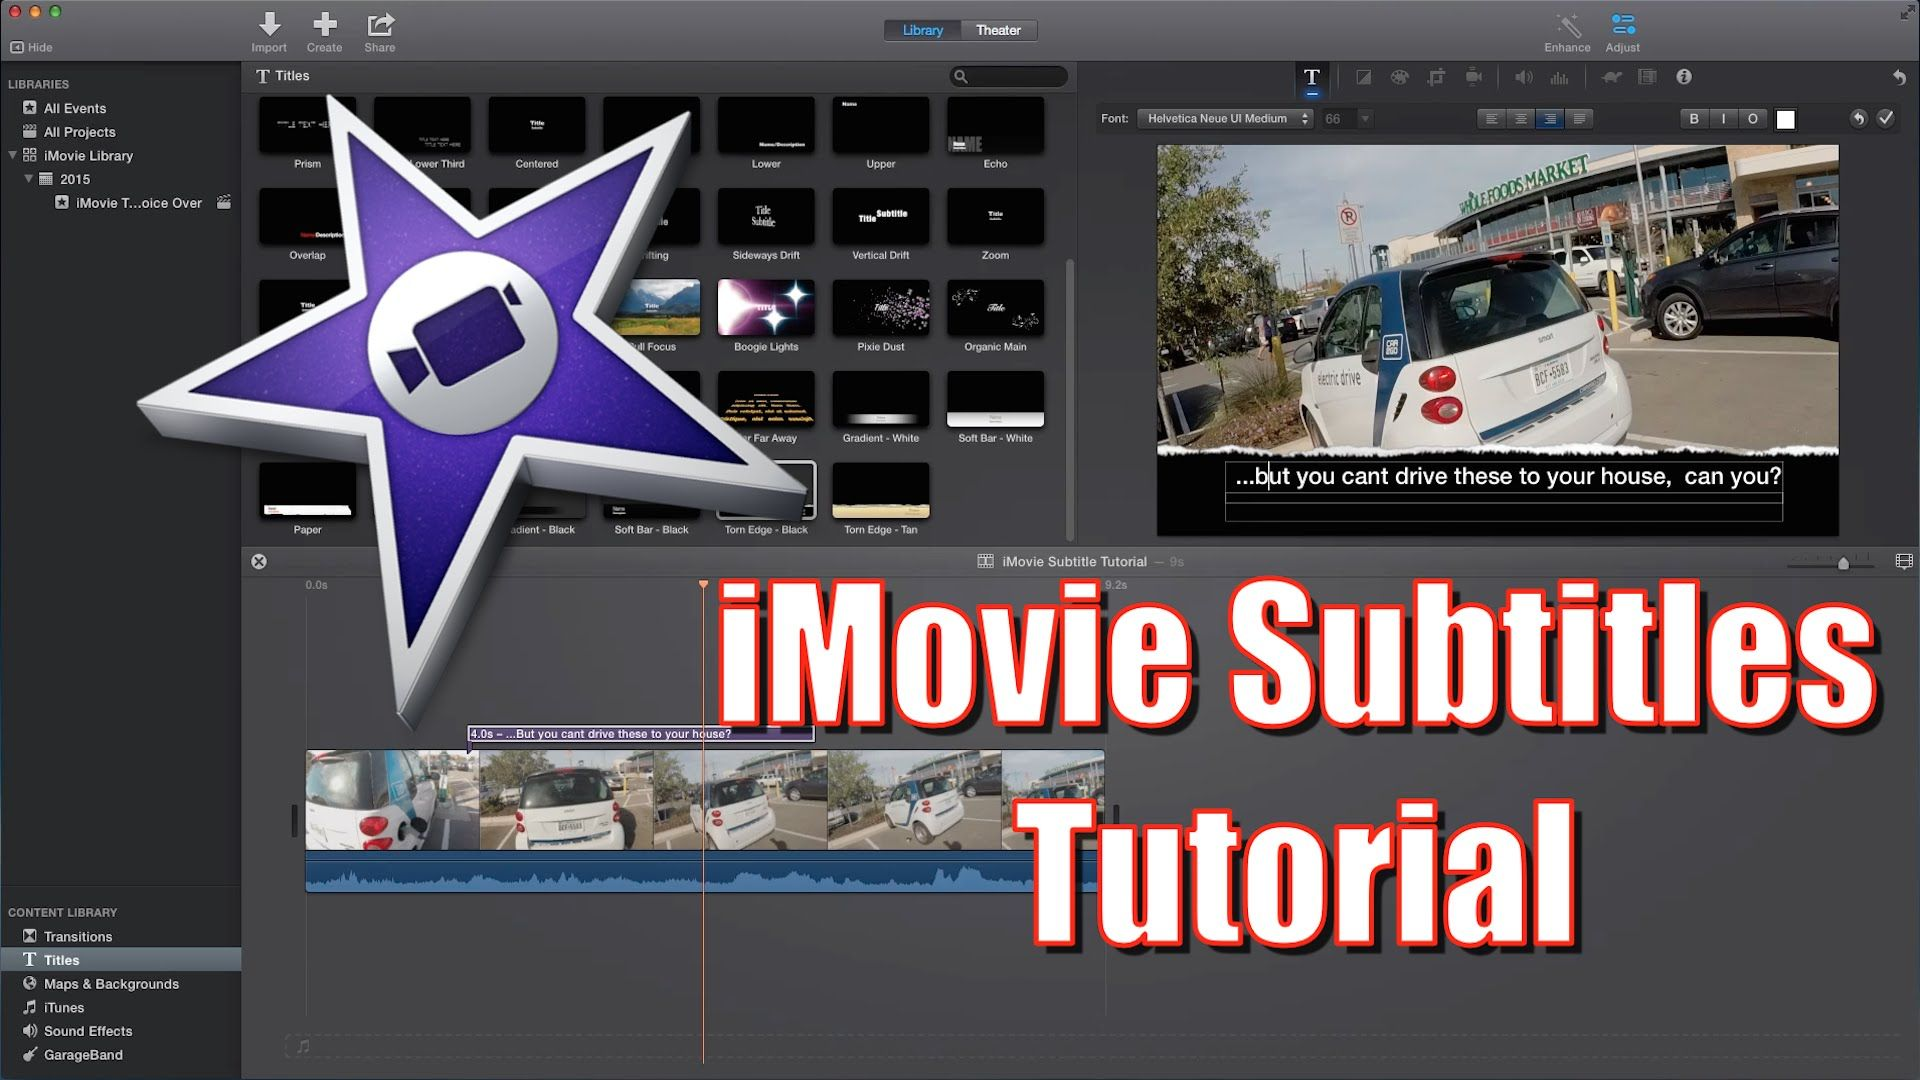 This is a tutorial for Apple's iMovie, that shows you how